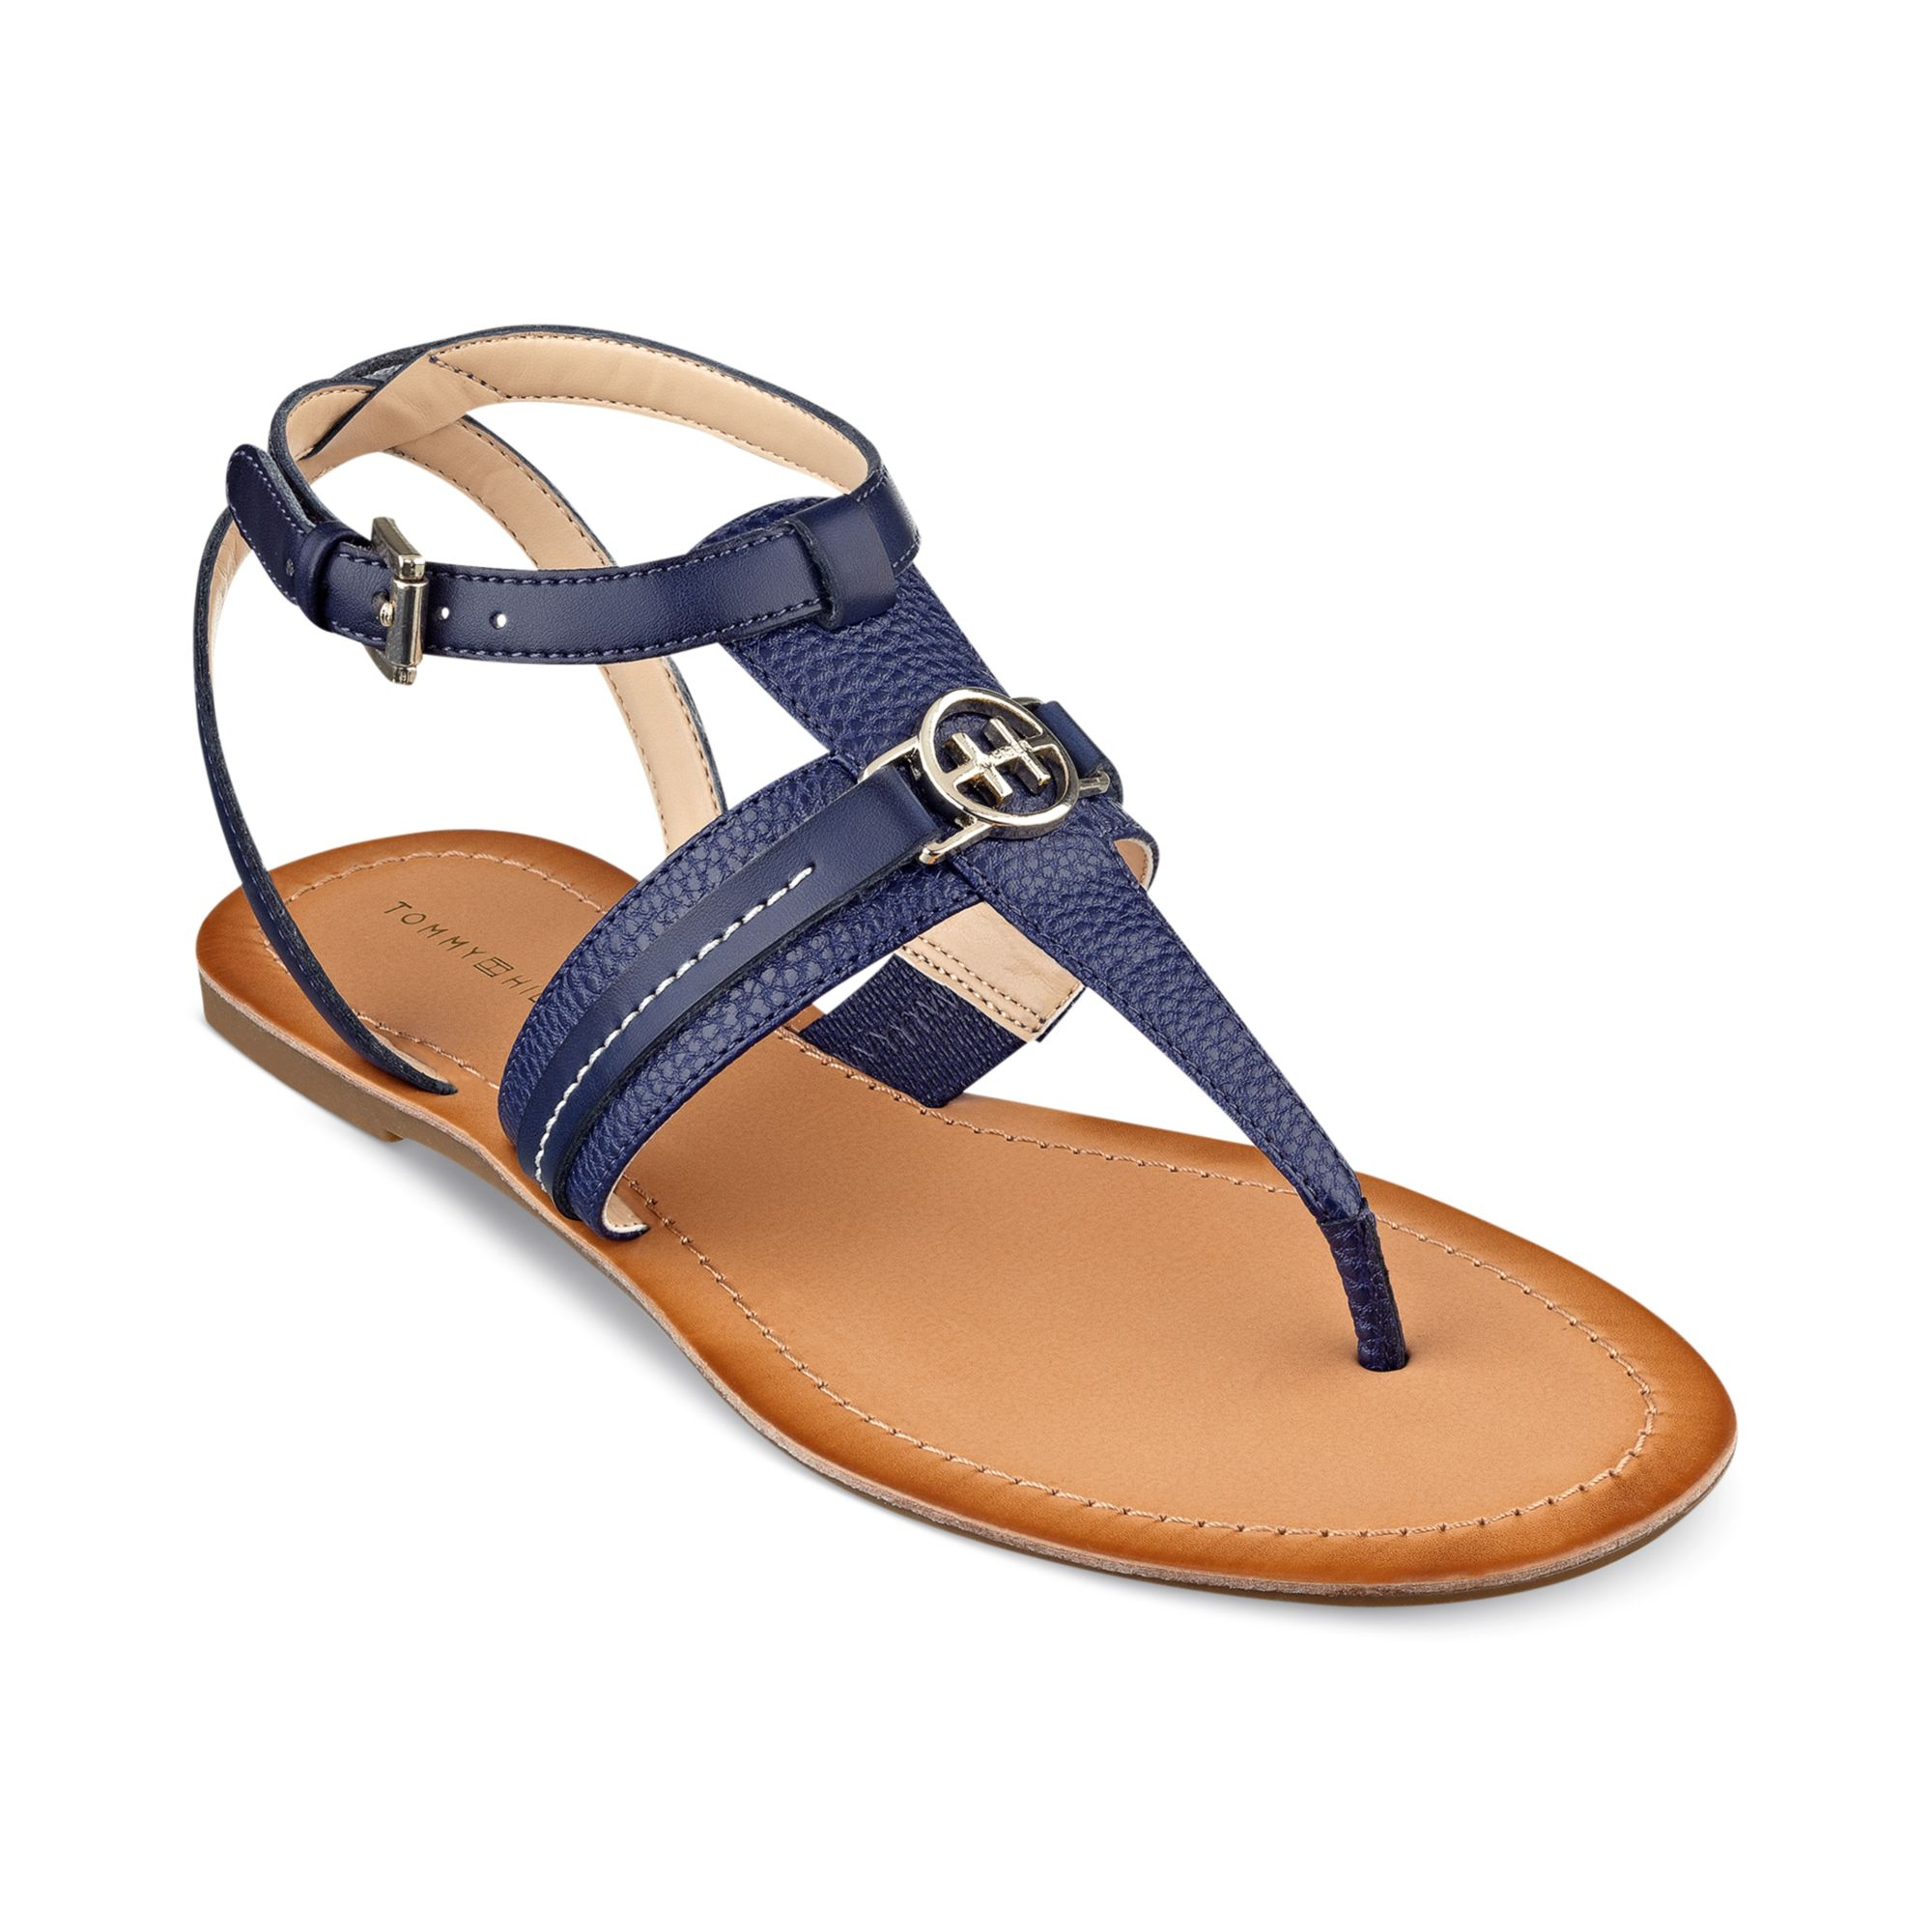 4f8aed046 Tommy Hilfiger Womens Lorine Flat Thong Sandals In Blue (King Blue)